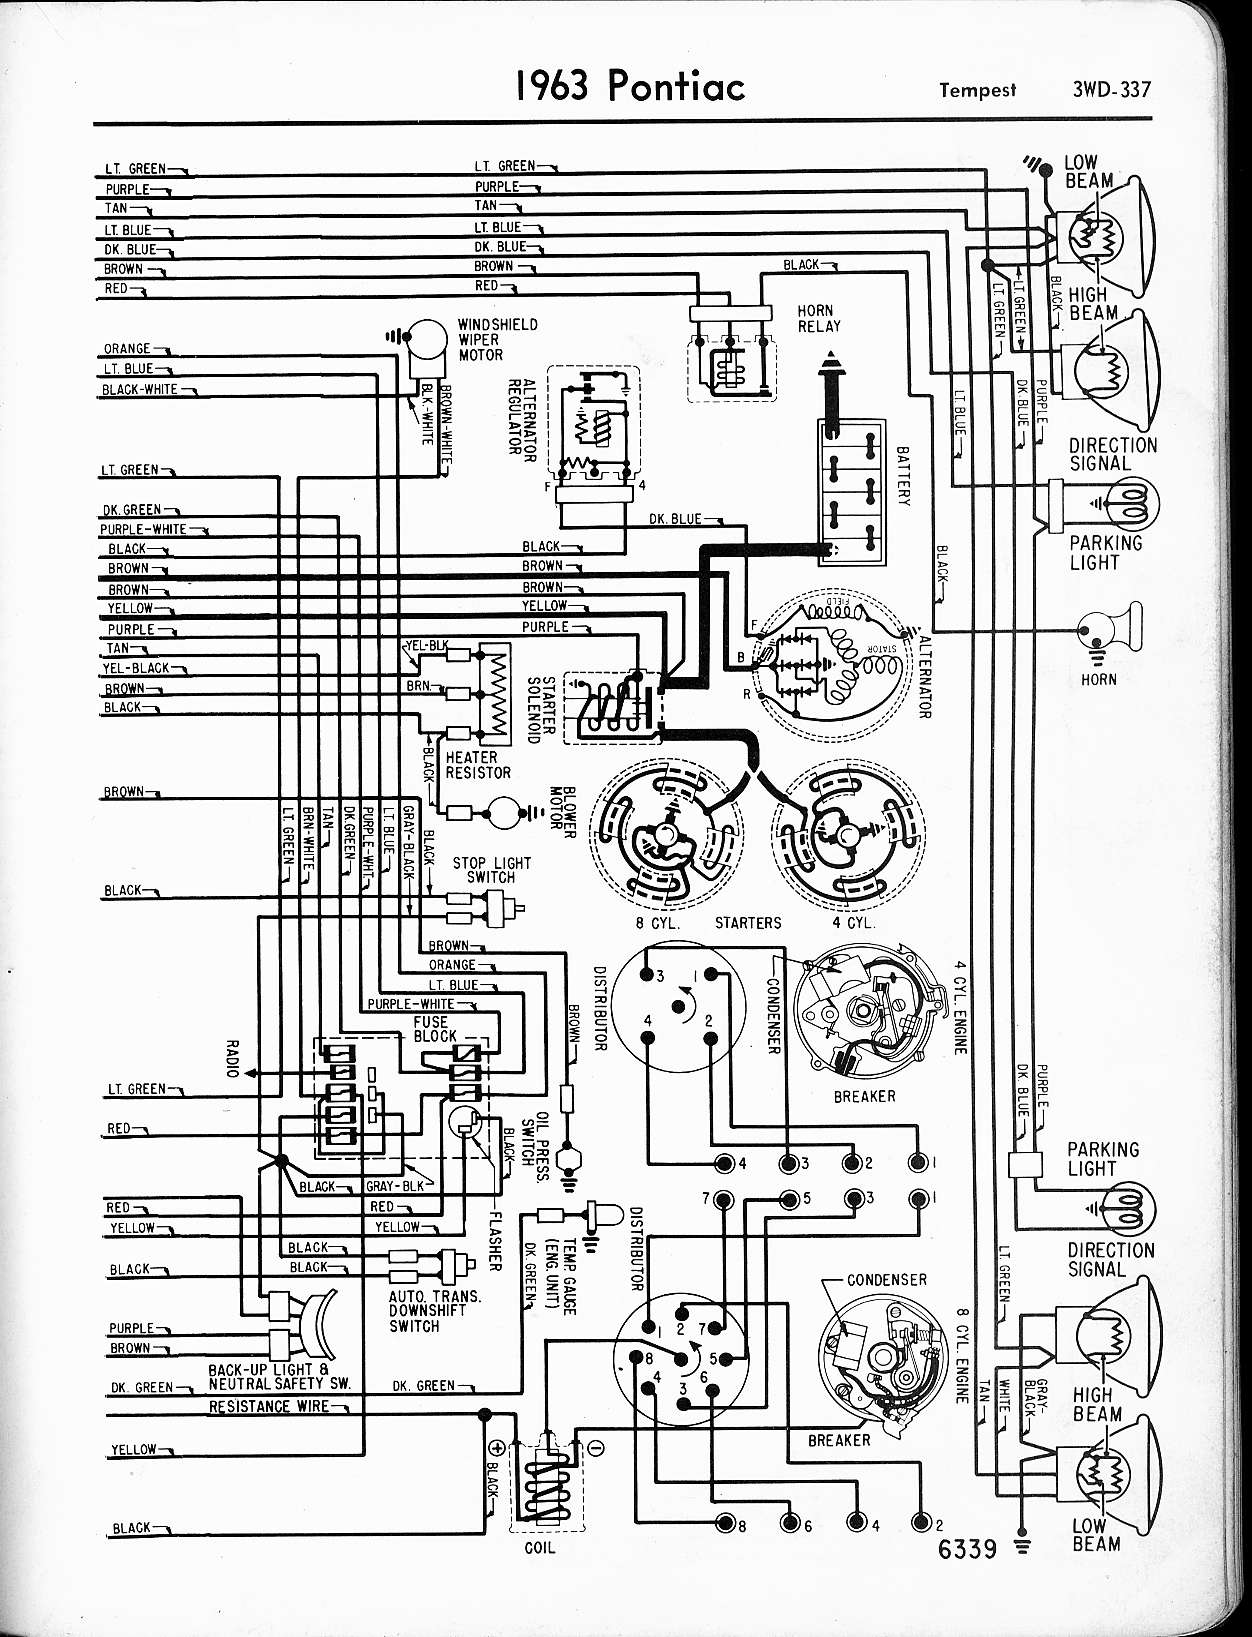 1957 pontiac wire diagram custom wiring diagram u2022 rh littlewaves co